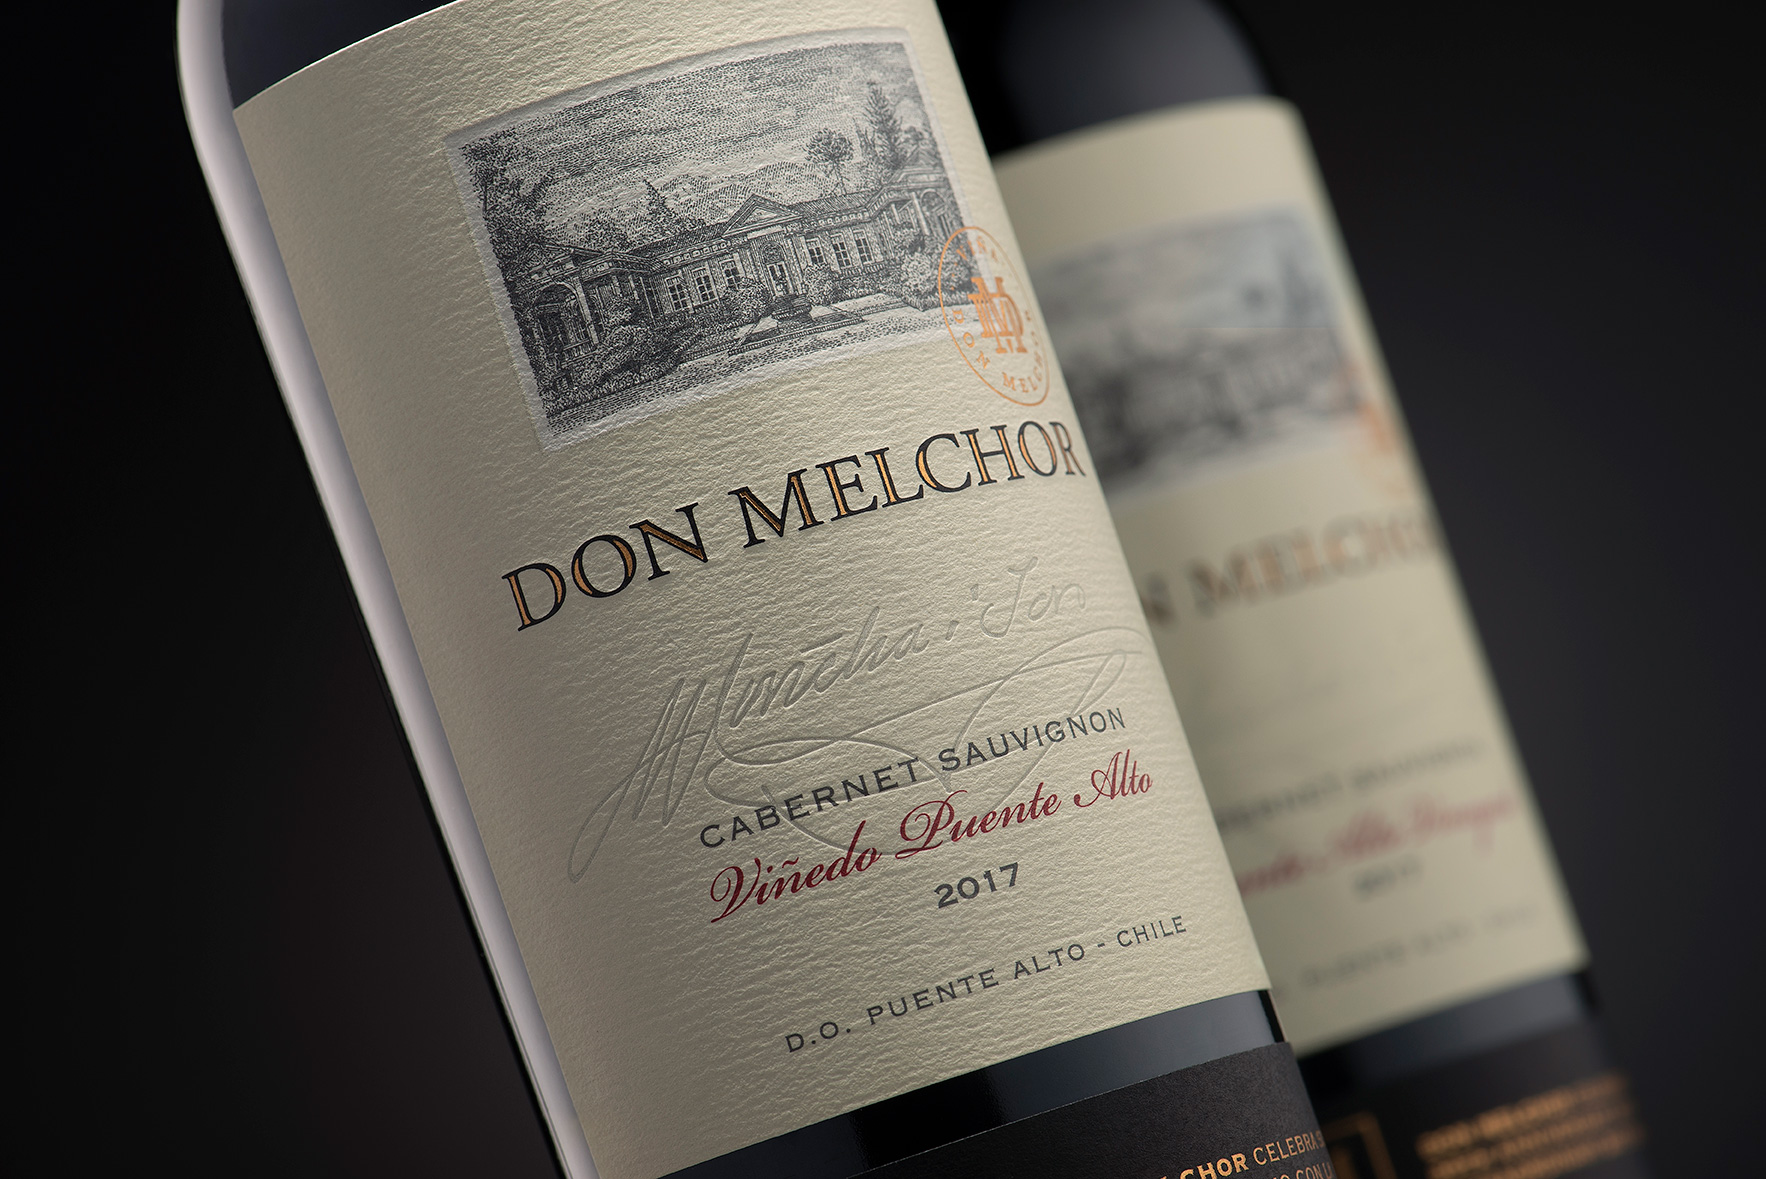 Outstanding 95 points for Don Melchor 2017